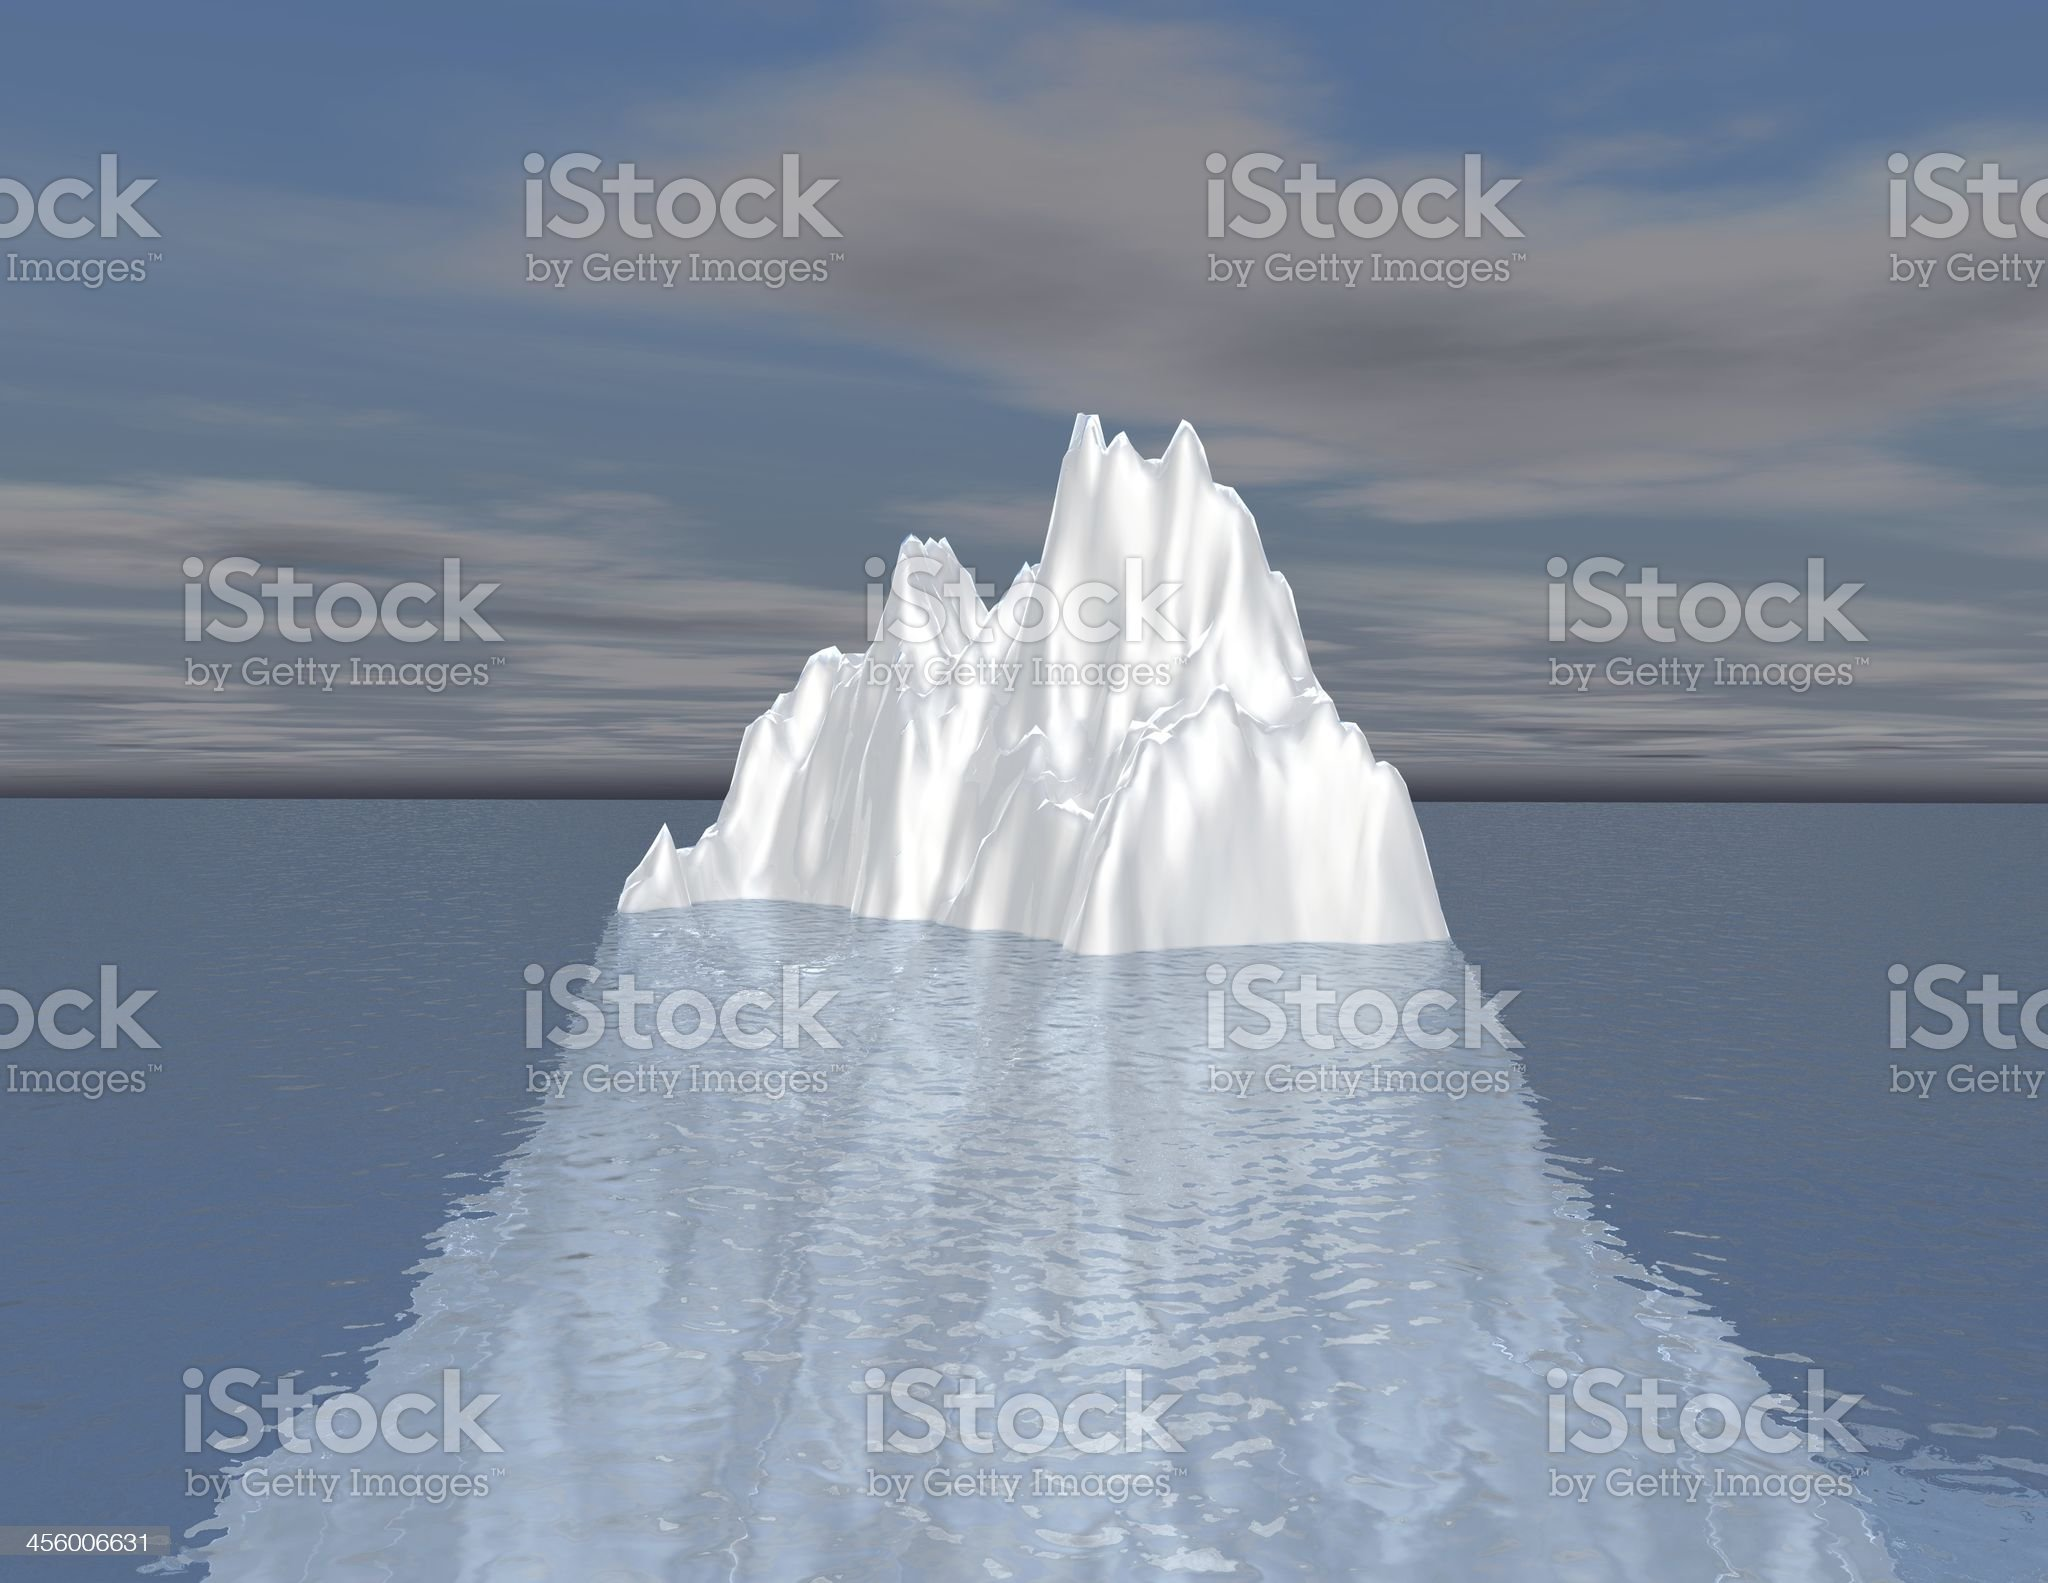 iceberg illustration intuition, hided and unconscious opportunity concept royalty-free stock photo